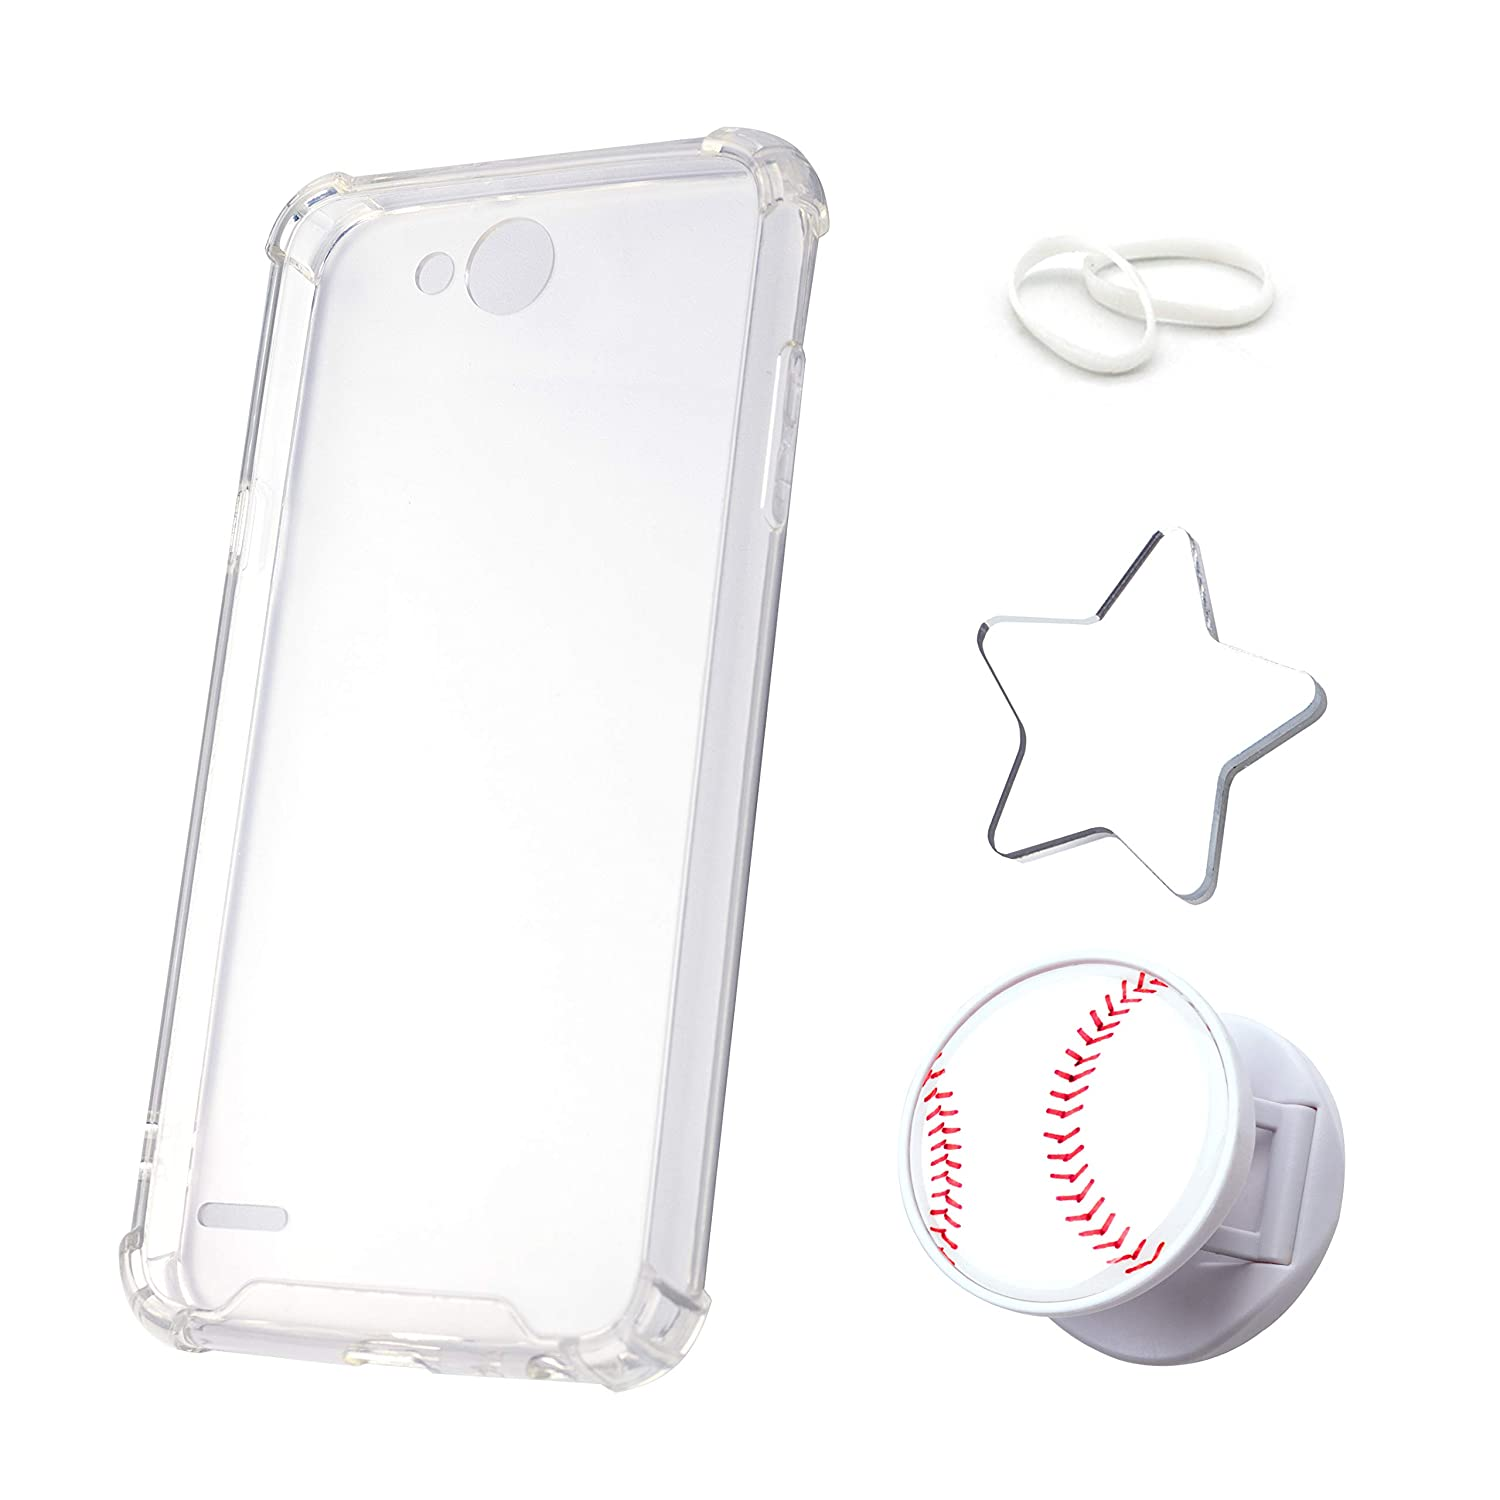 AIR Cushion Case for LG X Power 2, X Charge, Fiesta LTE, Fiesta 2, K10 Power with Poppin Grip Holder and Décor Mirror - Slim Clear Corner Bumper Cover with Flexible TPU and Hard PC Back